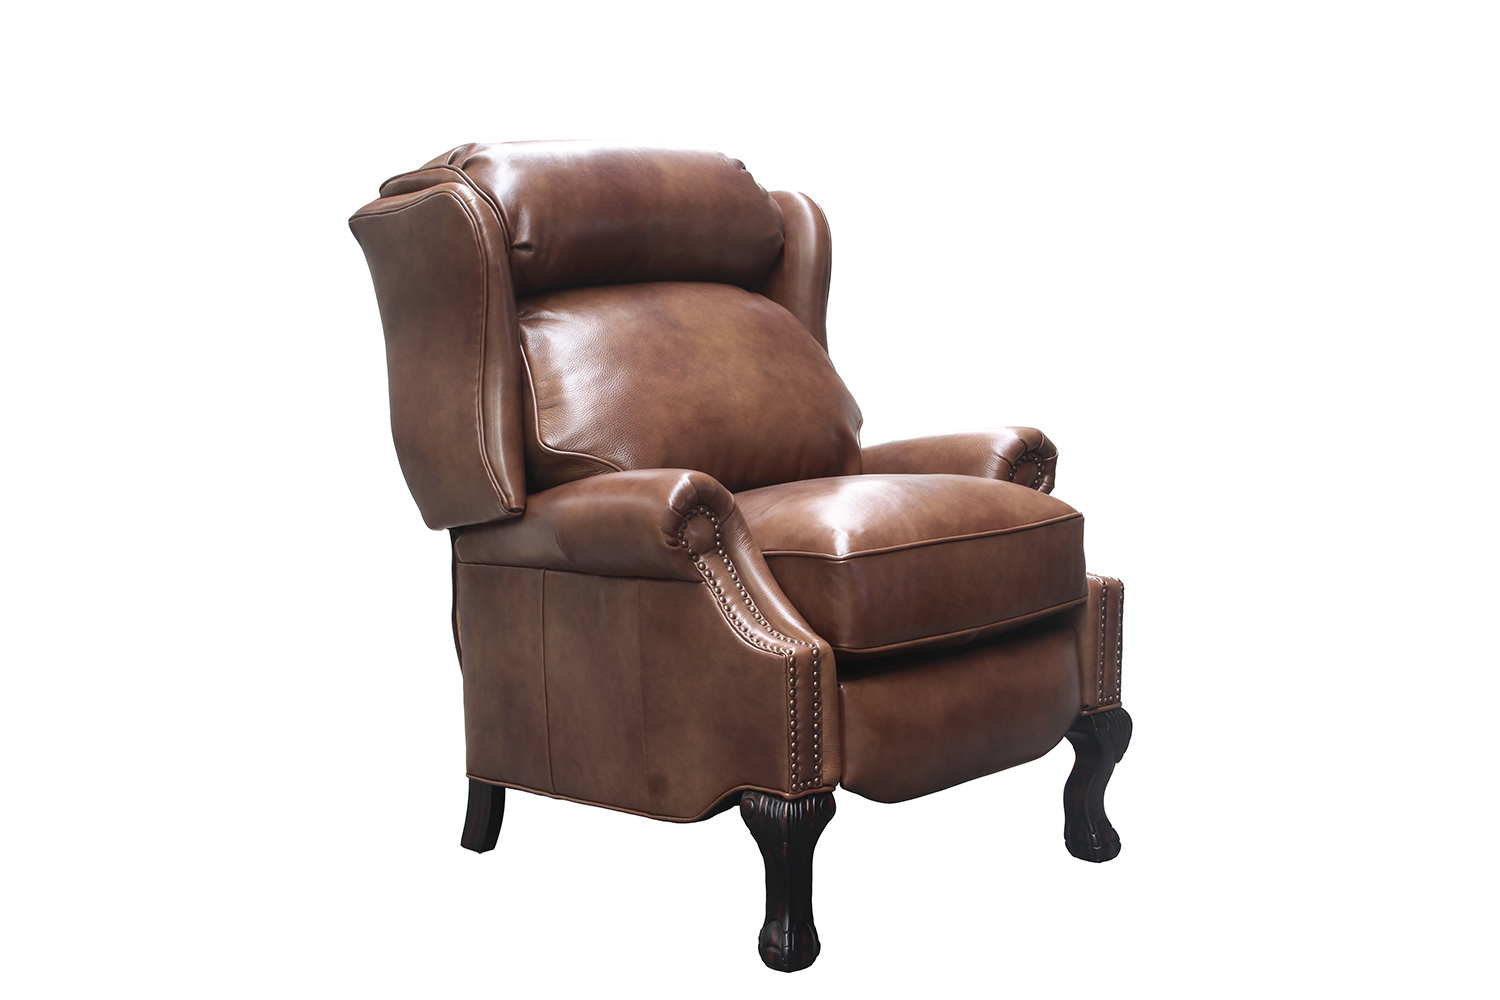 Barcalounger Danbury Recliner Chair - Wenlock Tawny/All Leather